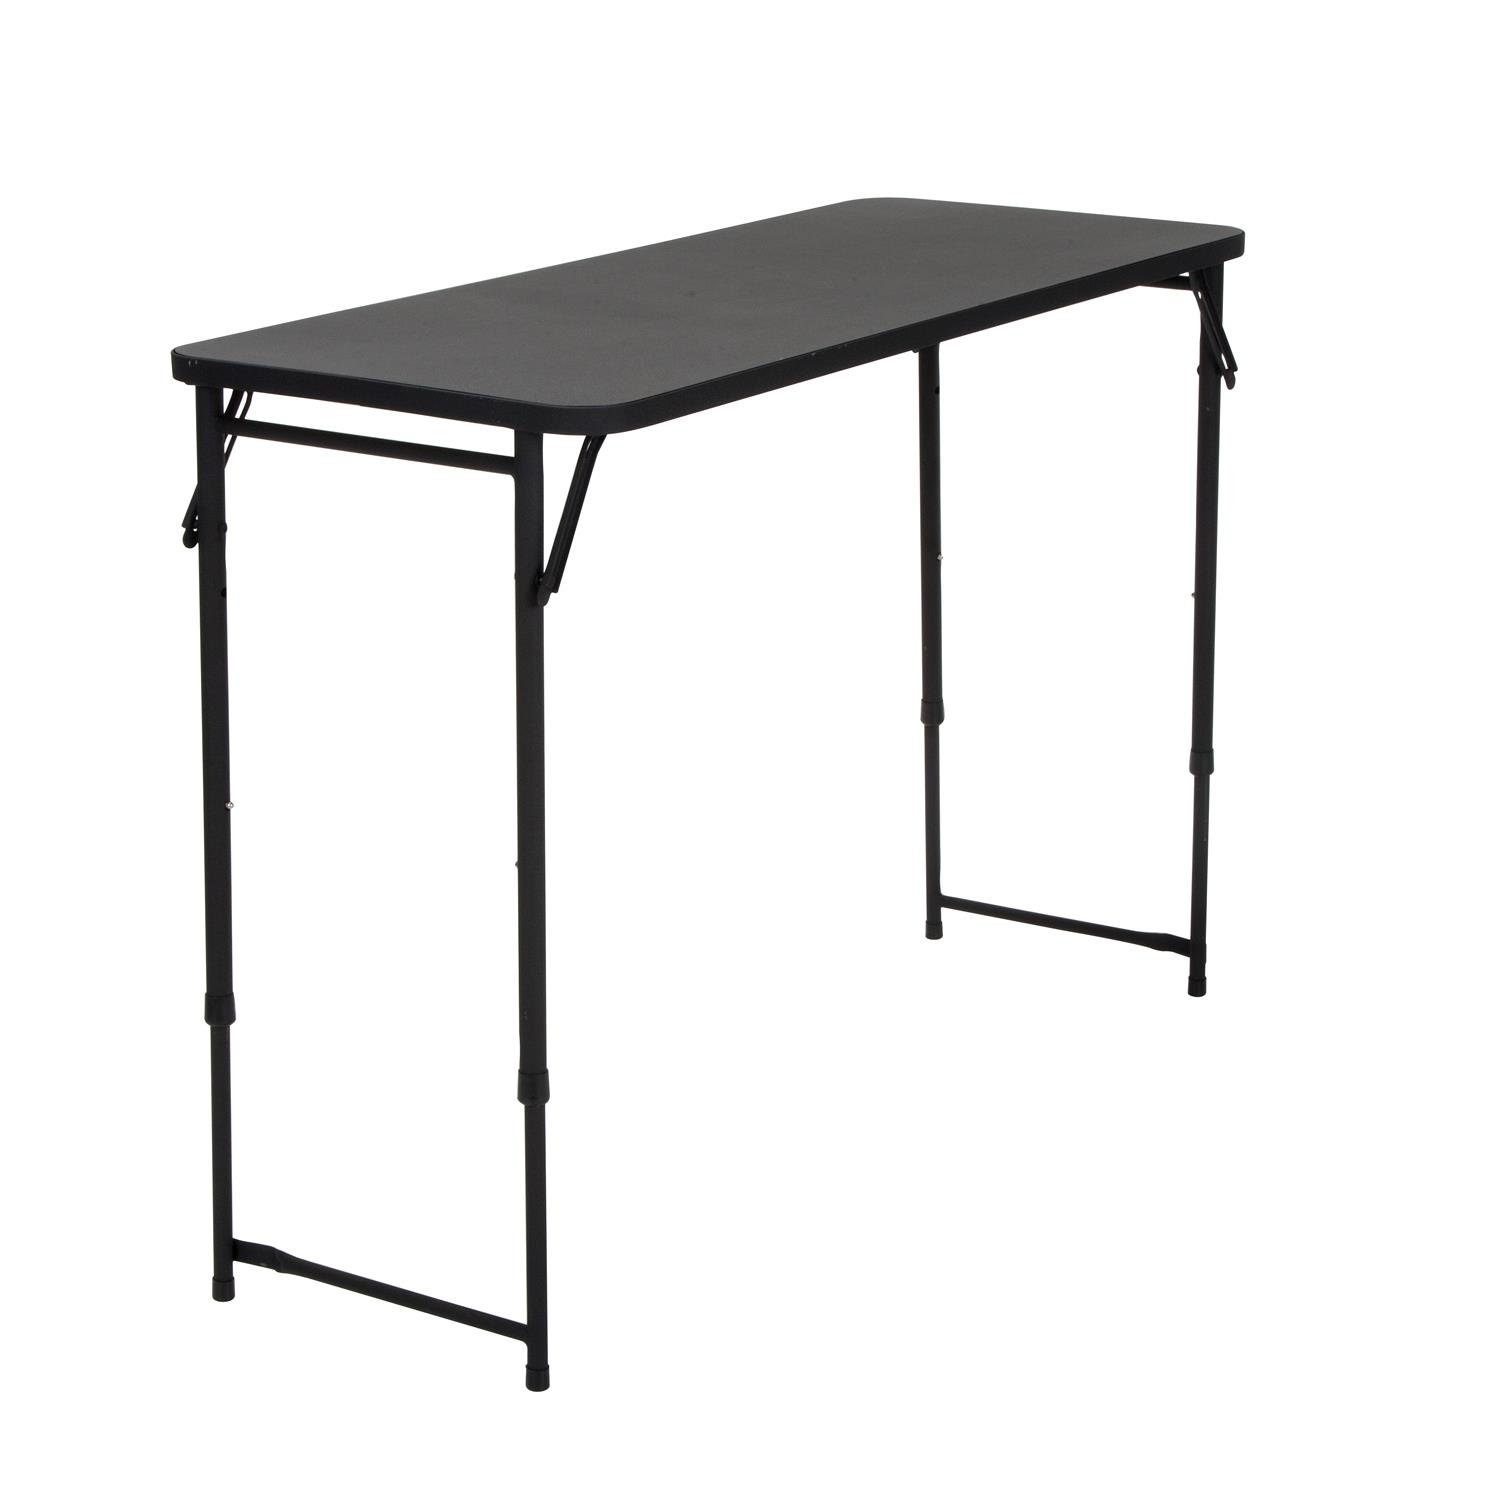 COSCO 20'' x 48'' Adjustable Height PVC Top Table, Black by Cosco Products